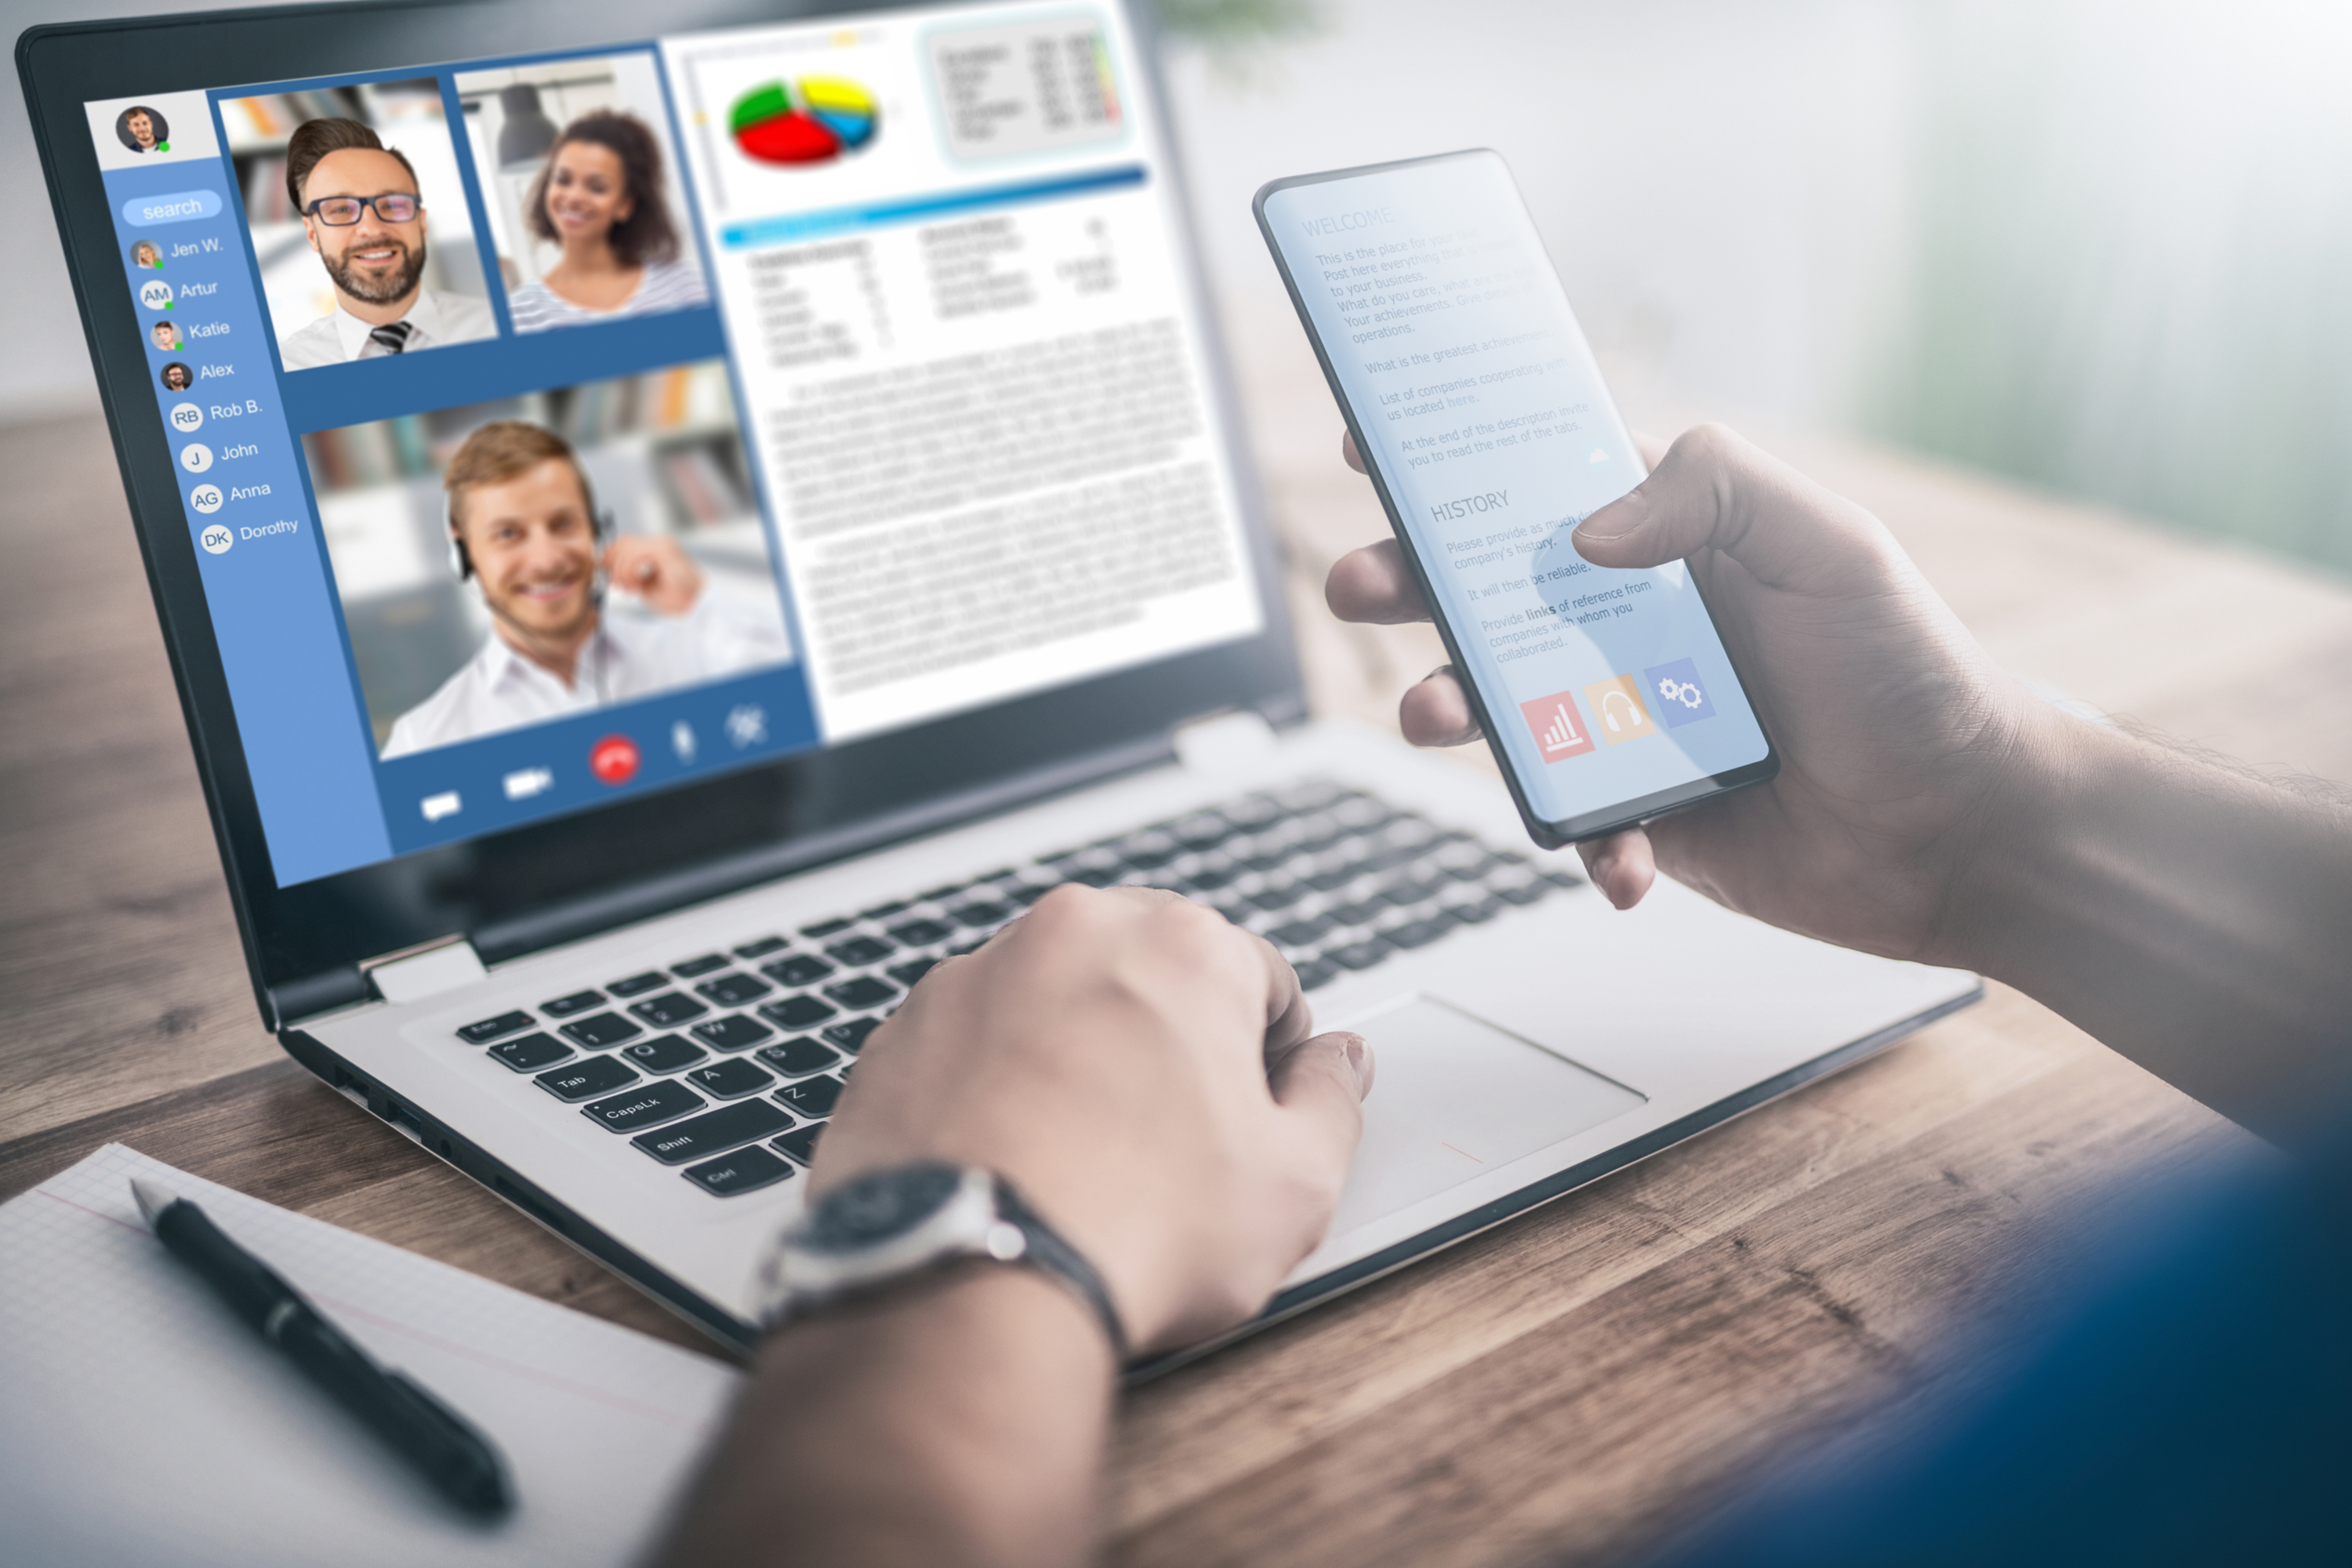 Opinion: Let's get serious about managing the remote workforce